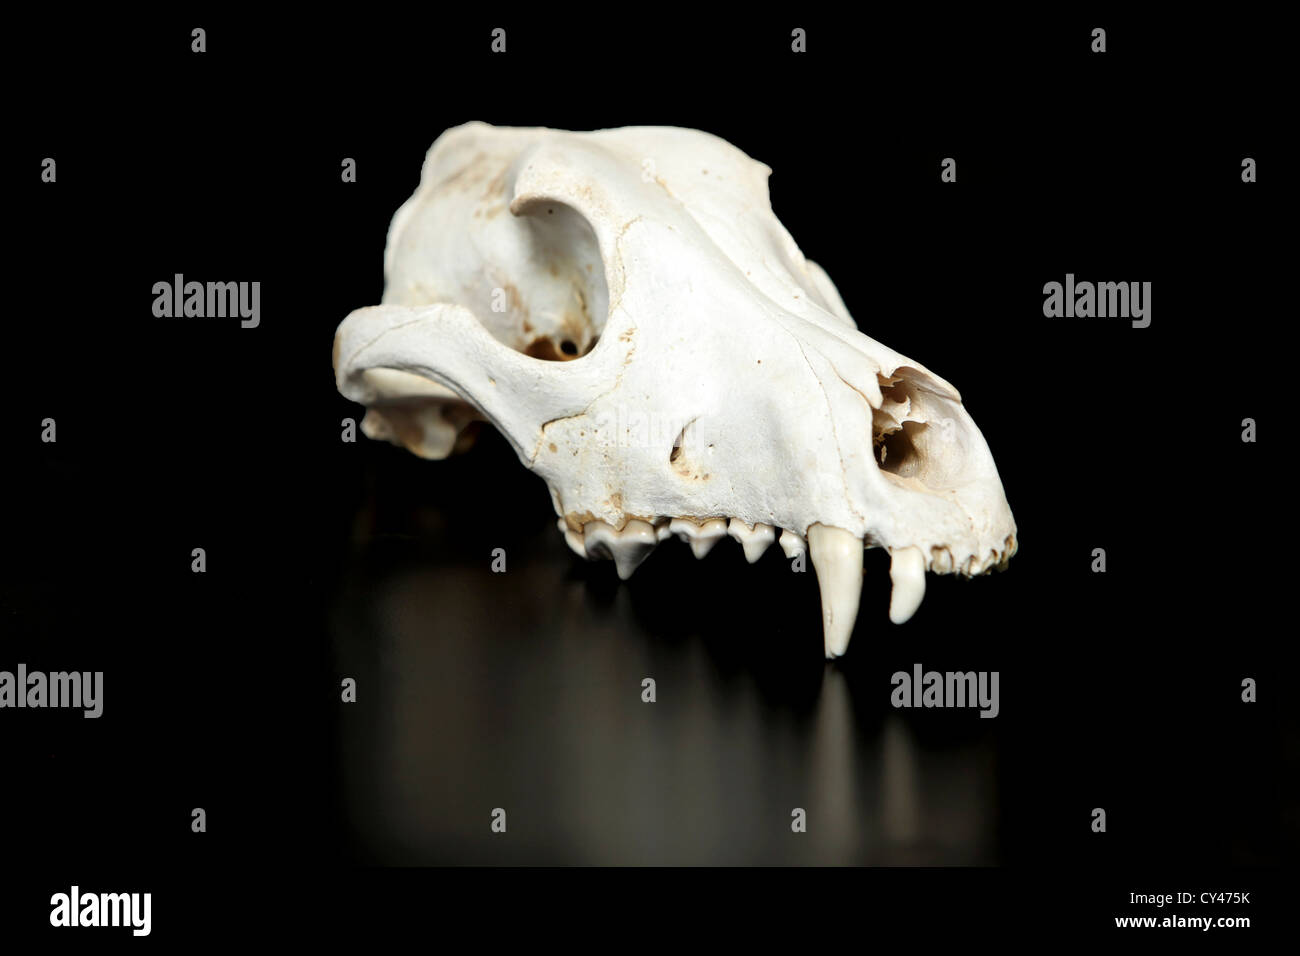 wild boar Animal skull with reflection On black Background - Stock Image